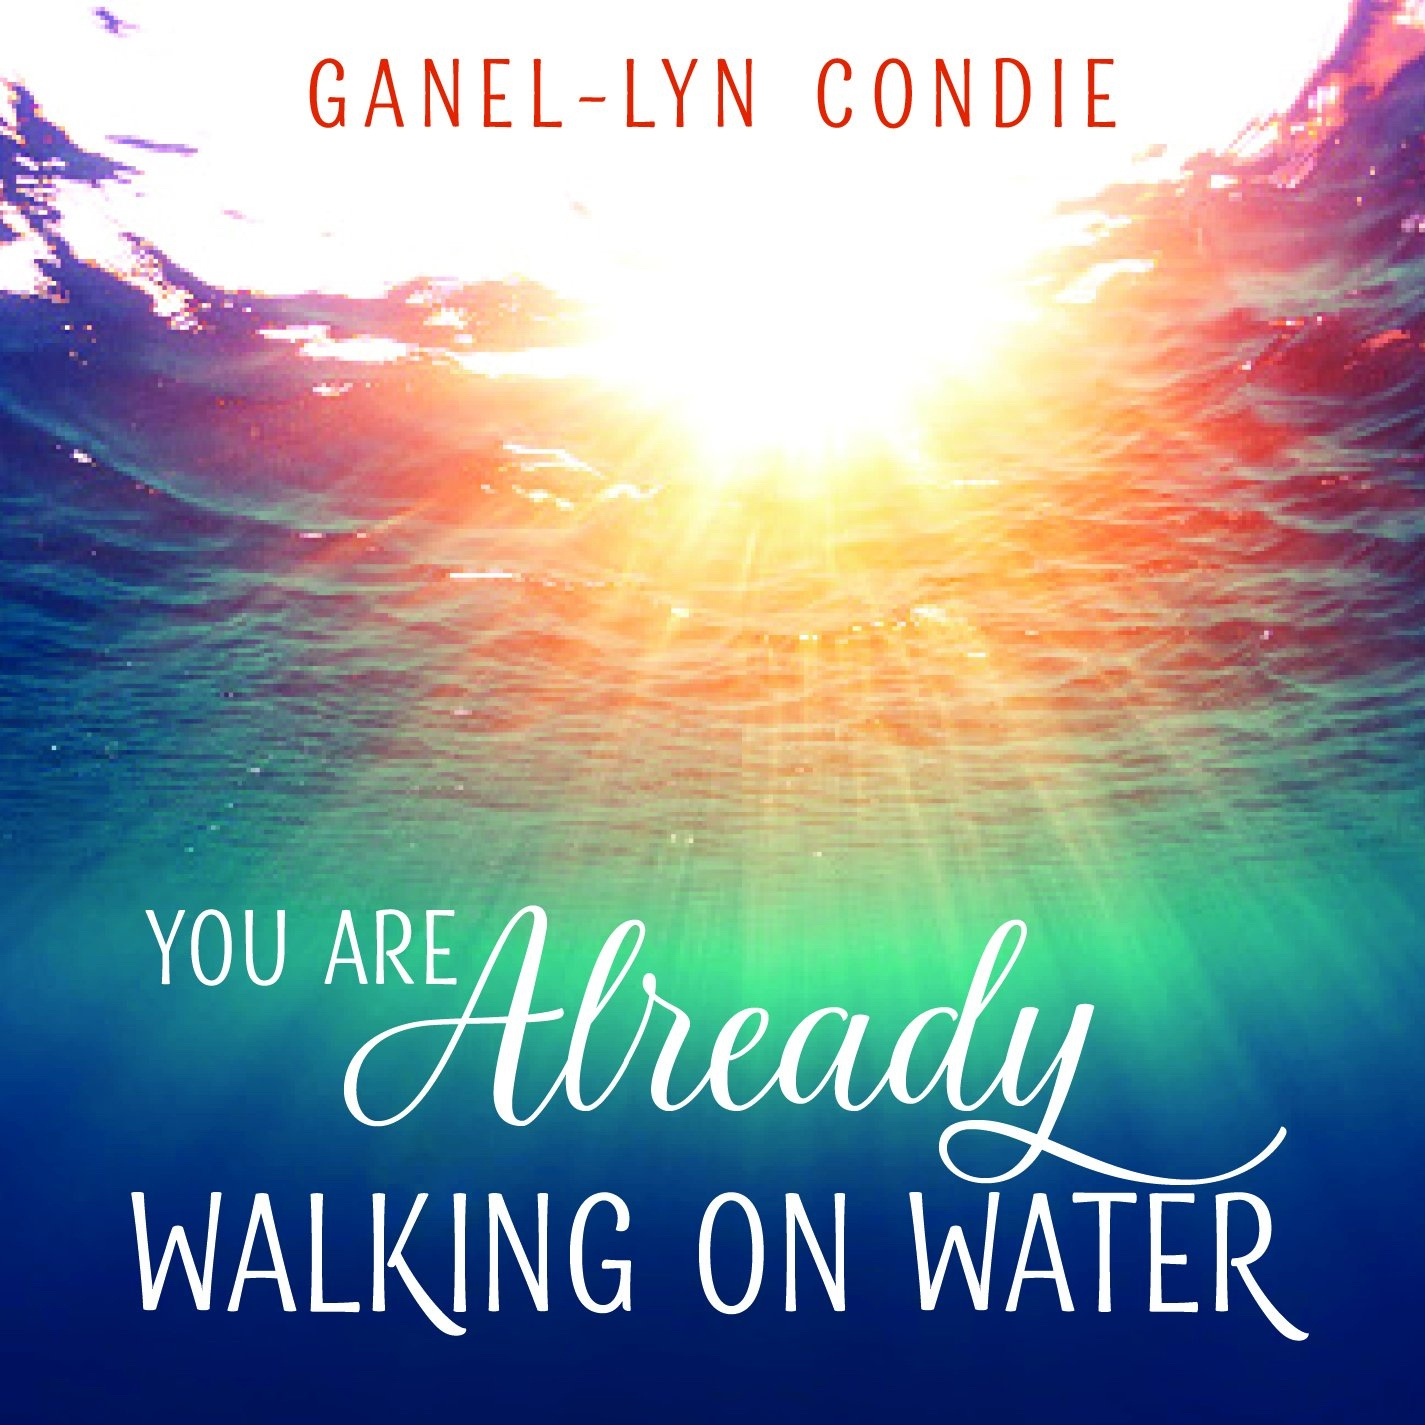 Image for You Are Walking on Water